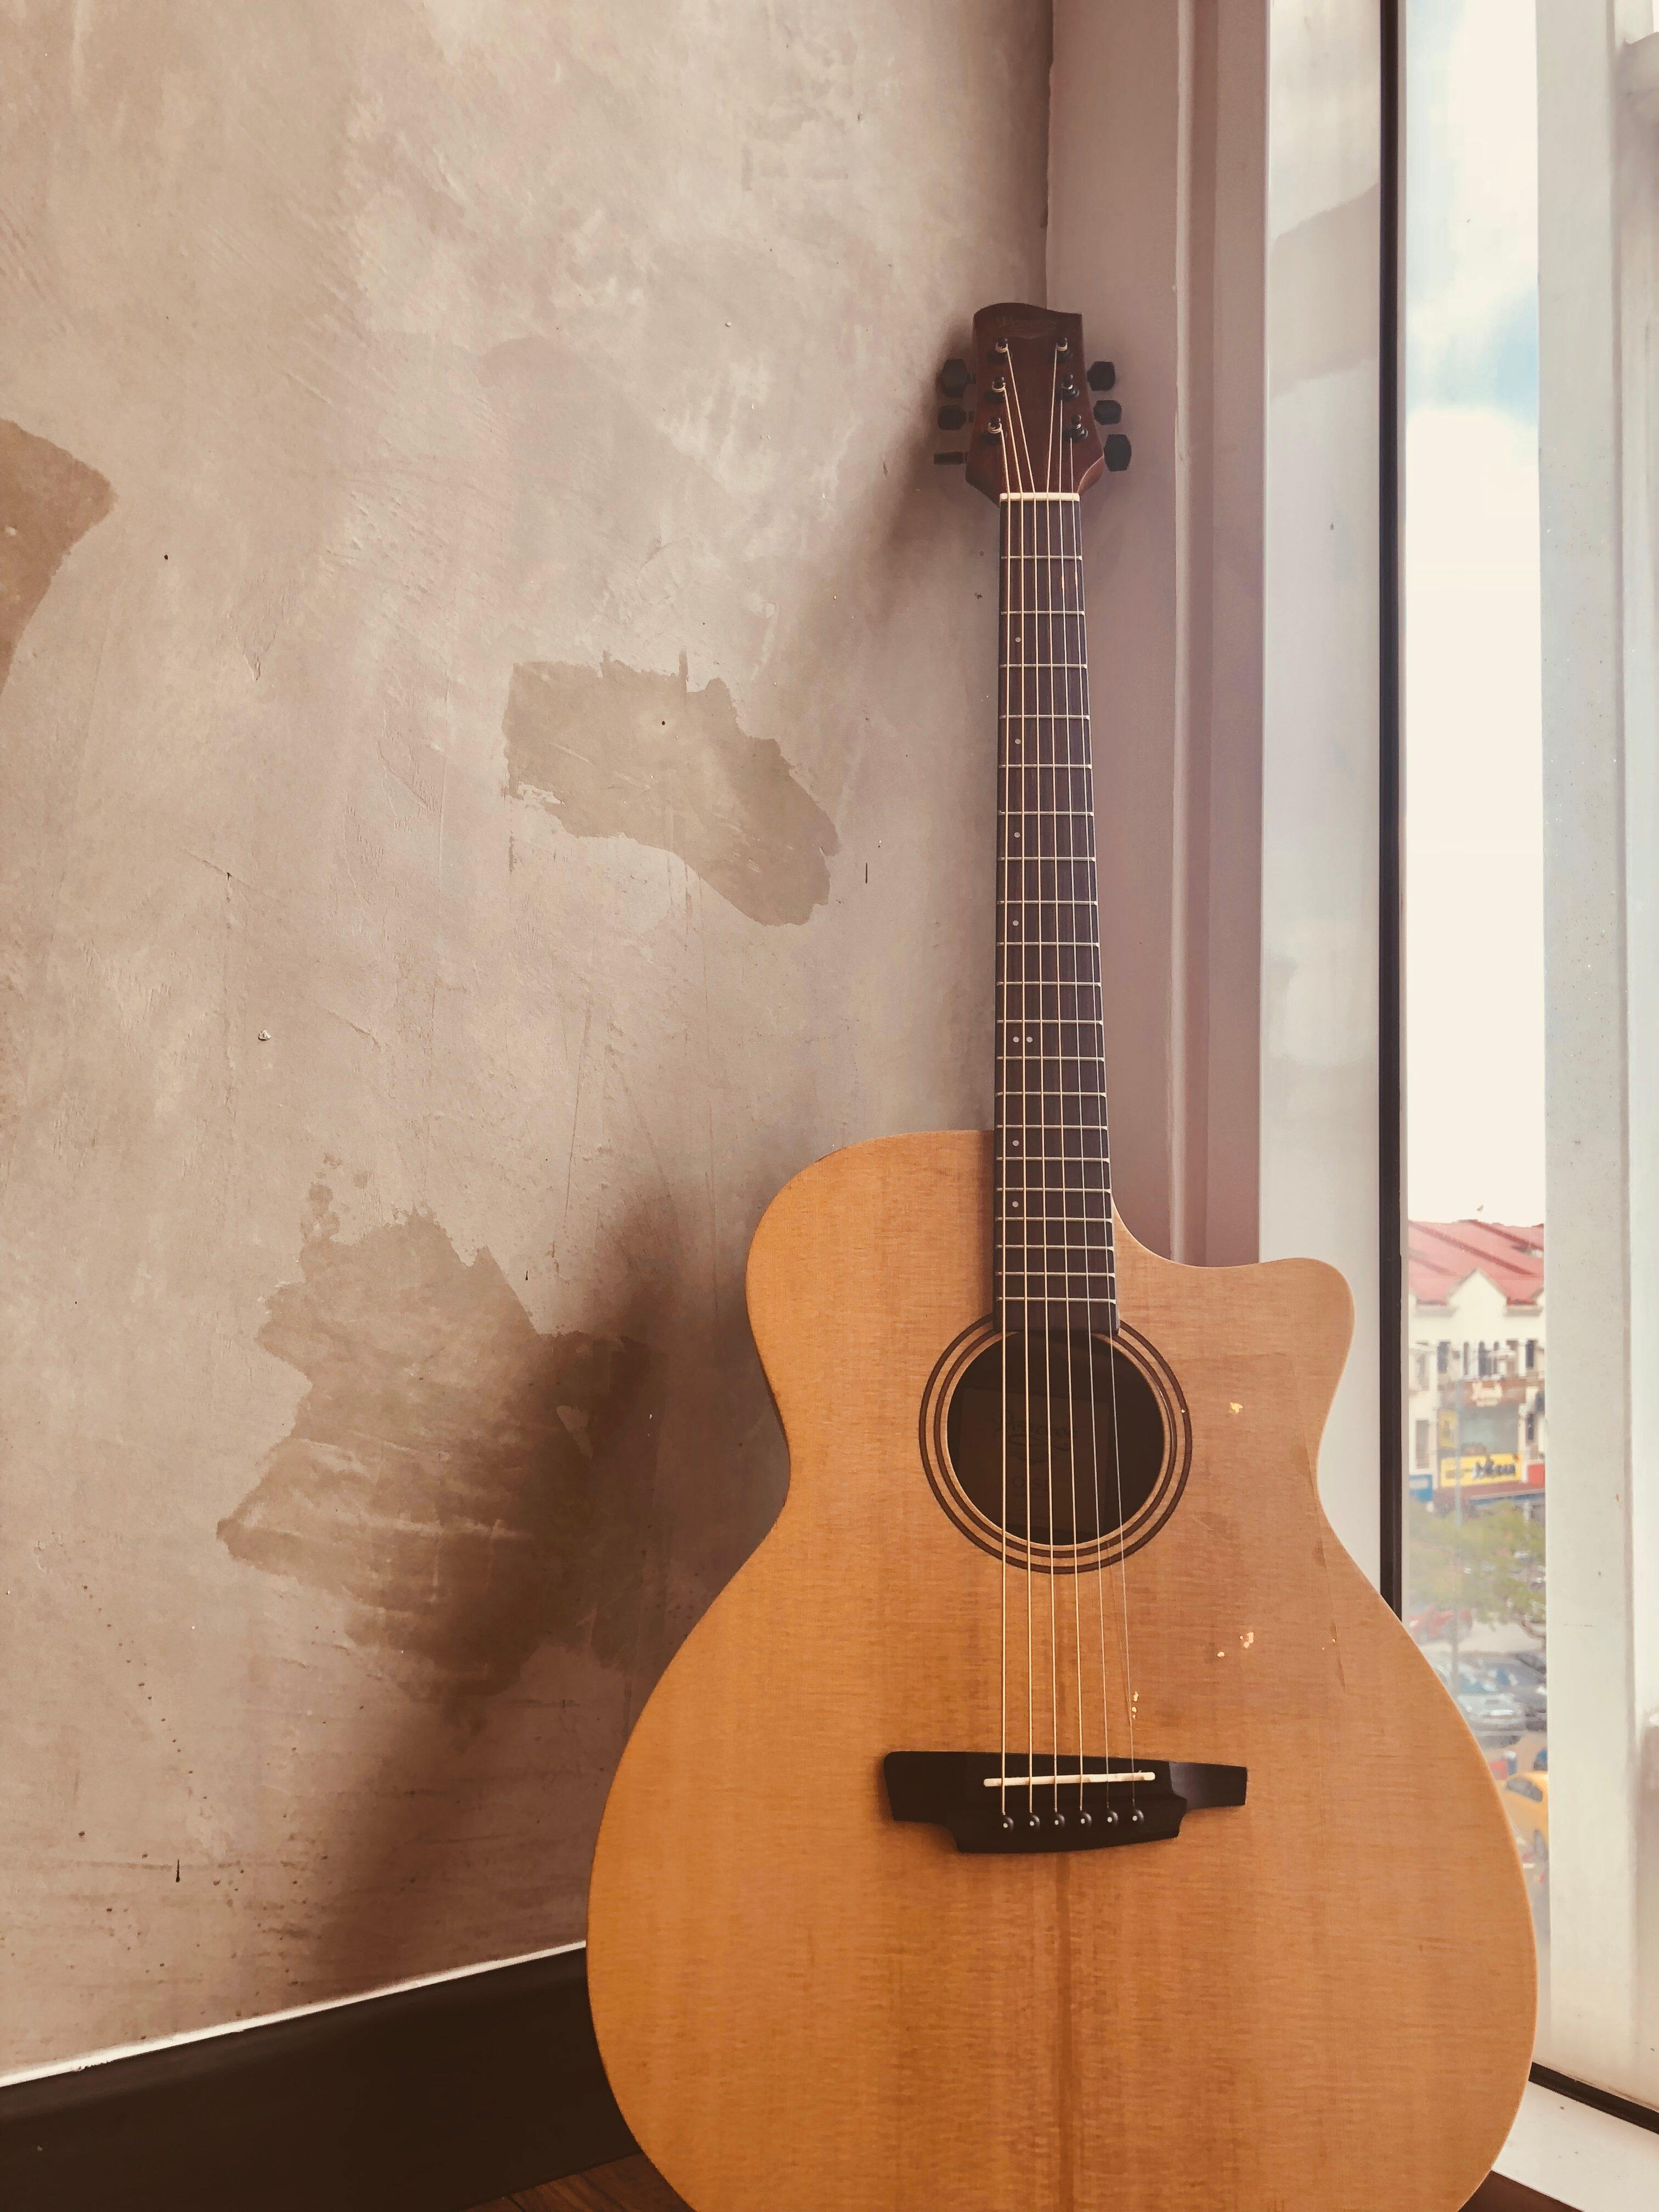 Protégé OS-1 by Maestro Guitars, Acoustic Guitar for Beginners. Matte finish. COMES WITH Protege Guitar Bag 5mm Padding and Dunlop Guitar Pick